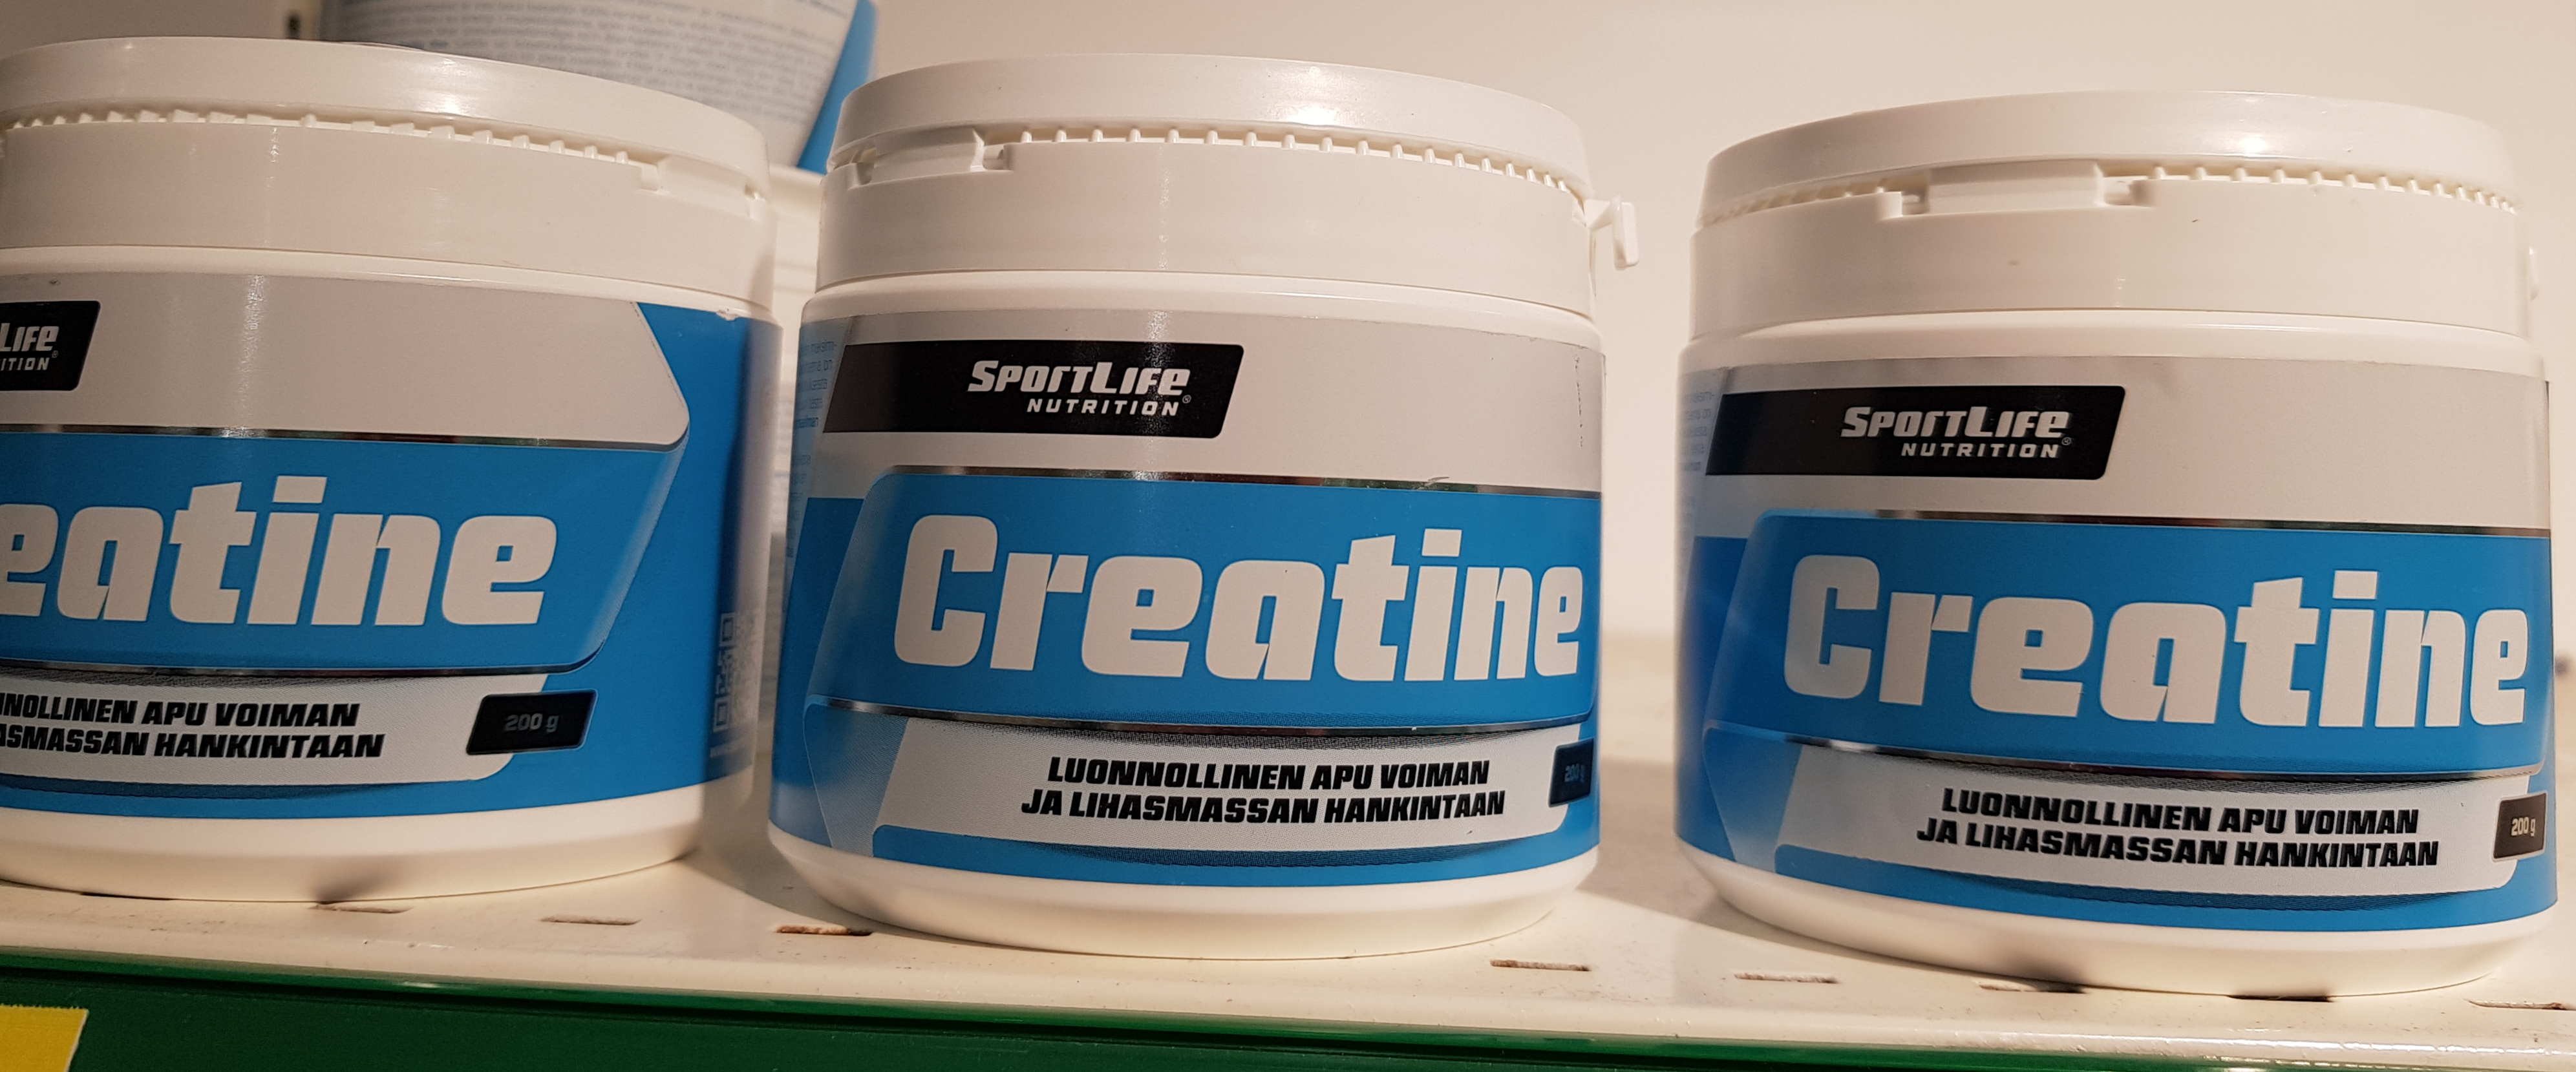 Parkinson's disease and creatine